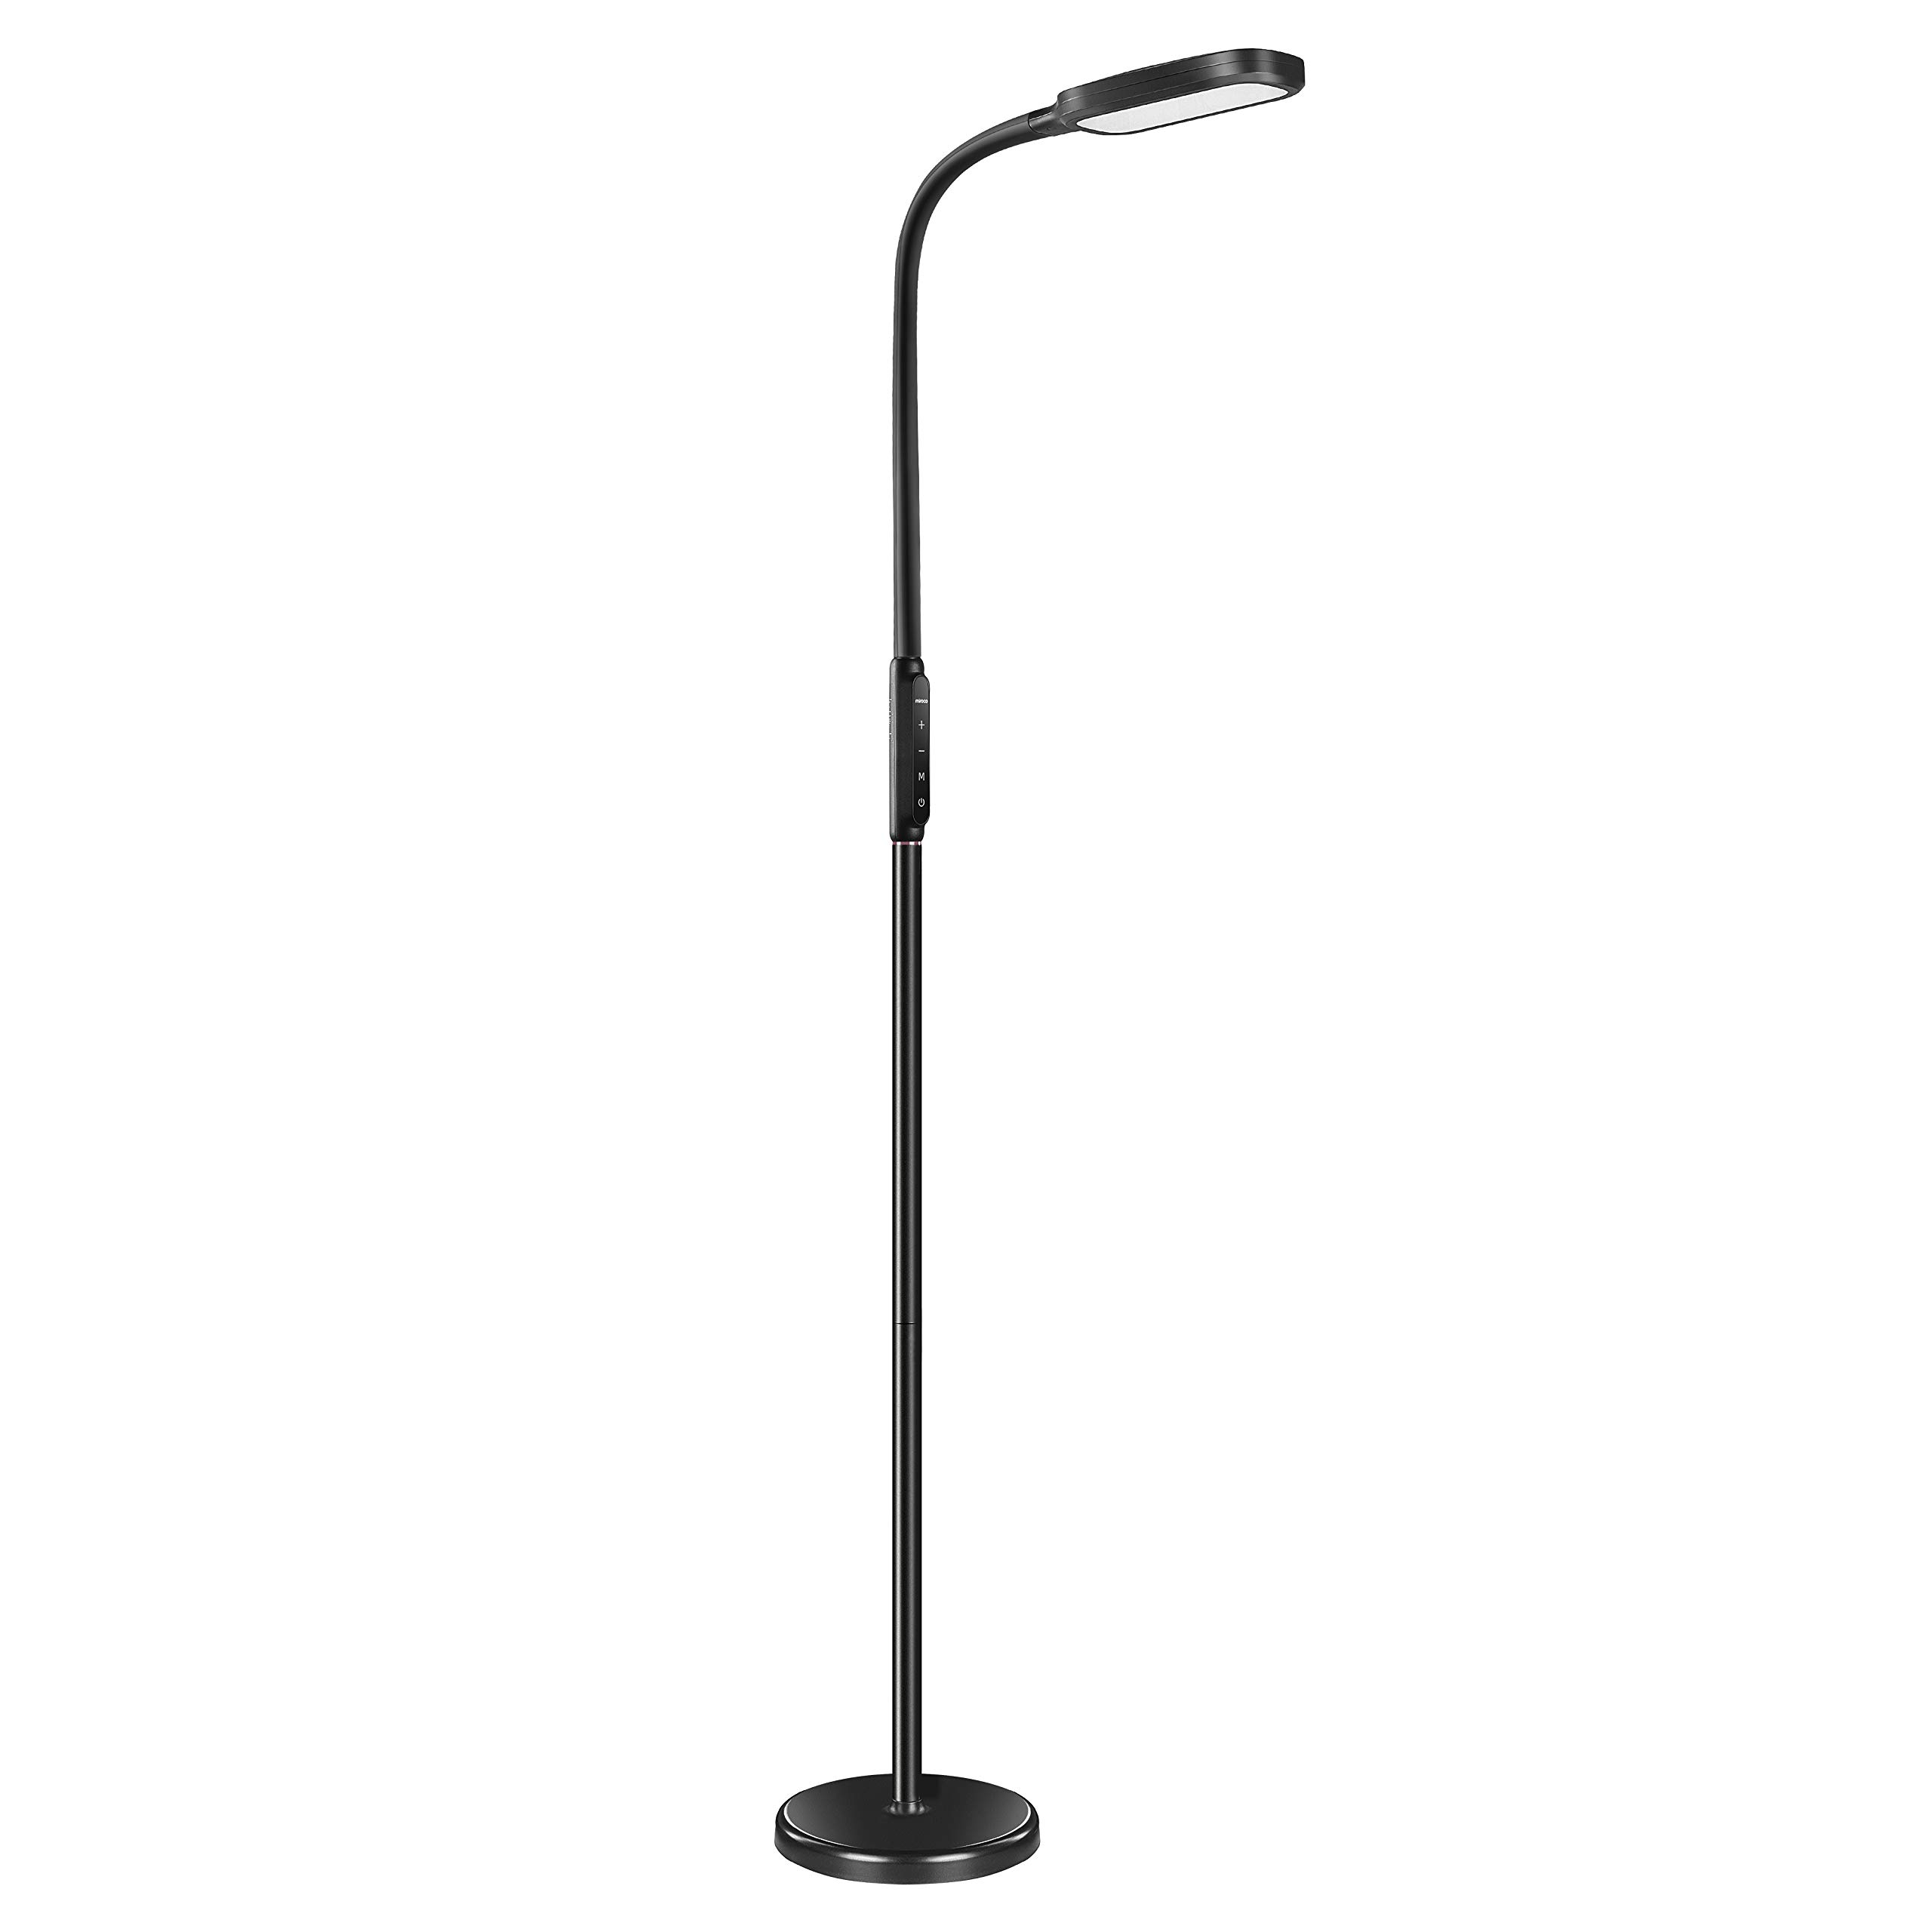 Miroco LED Floor Lamp with 5 Brightness Levels & 3 Color Temperatures, 1815 Lumens, Adjustable LED Floor Light, Dimmable Reading Standing Lamp for Sewing Living Room Bedroom Office by Miroco